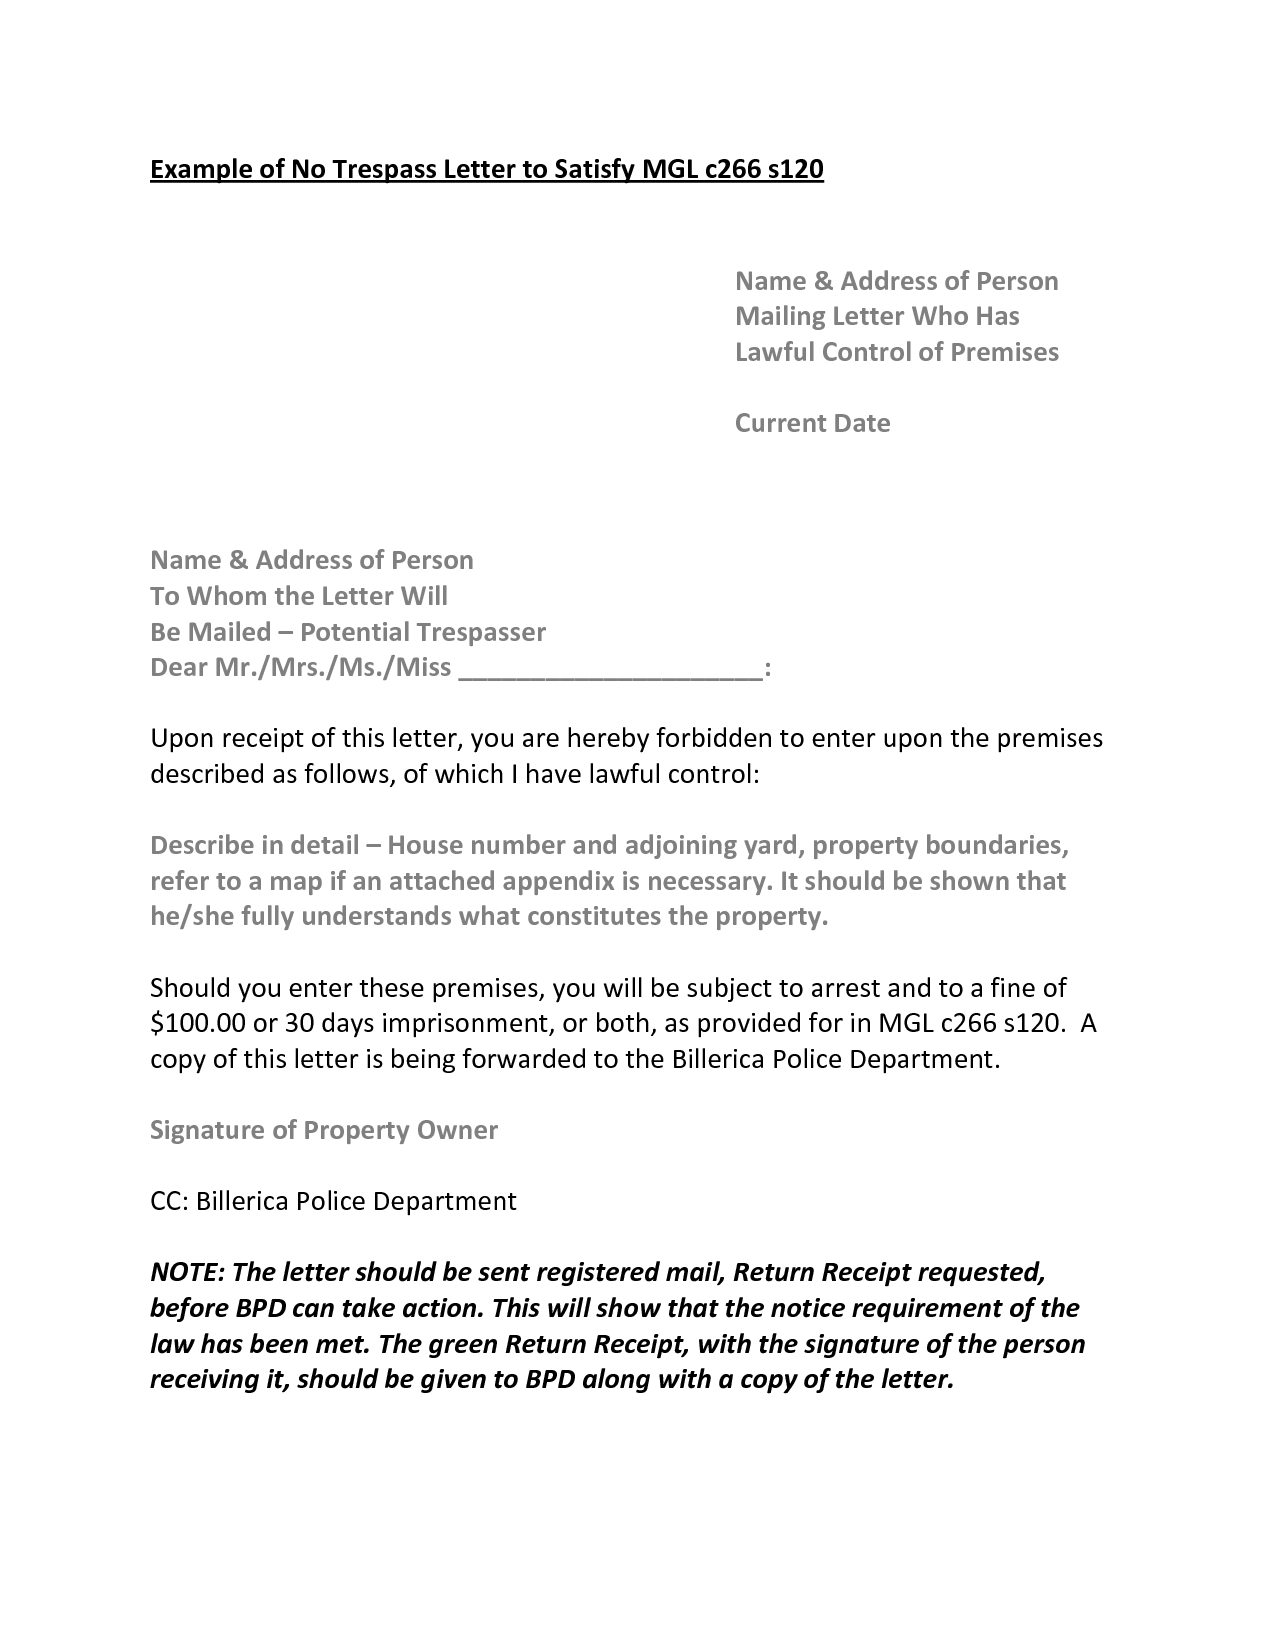 Cease and Desist Trespassing Letter Template - New Trespass Notice Template A Place for Template Lover